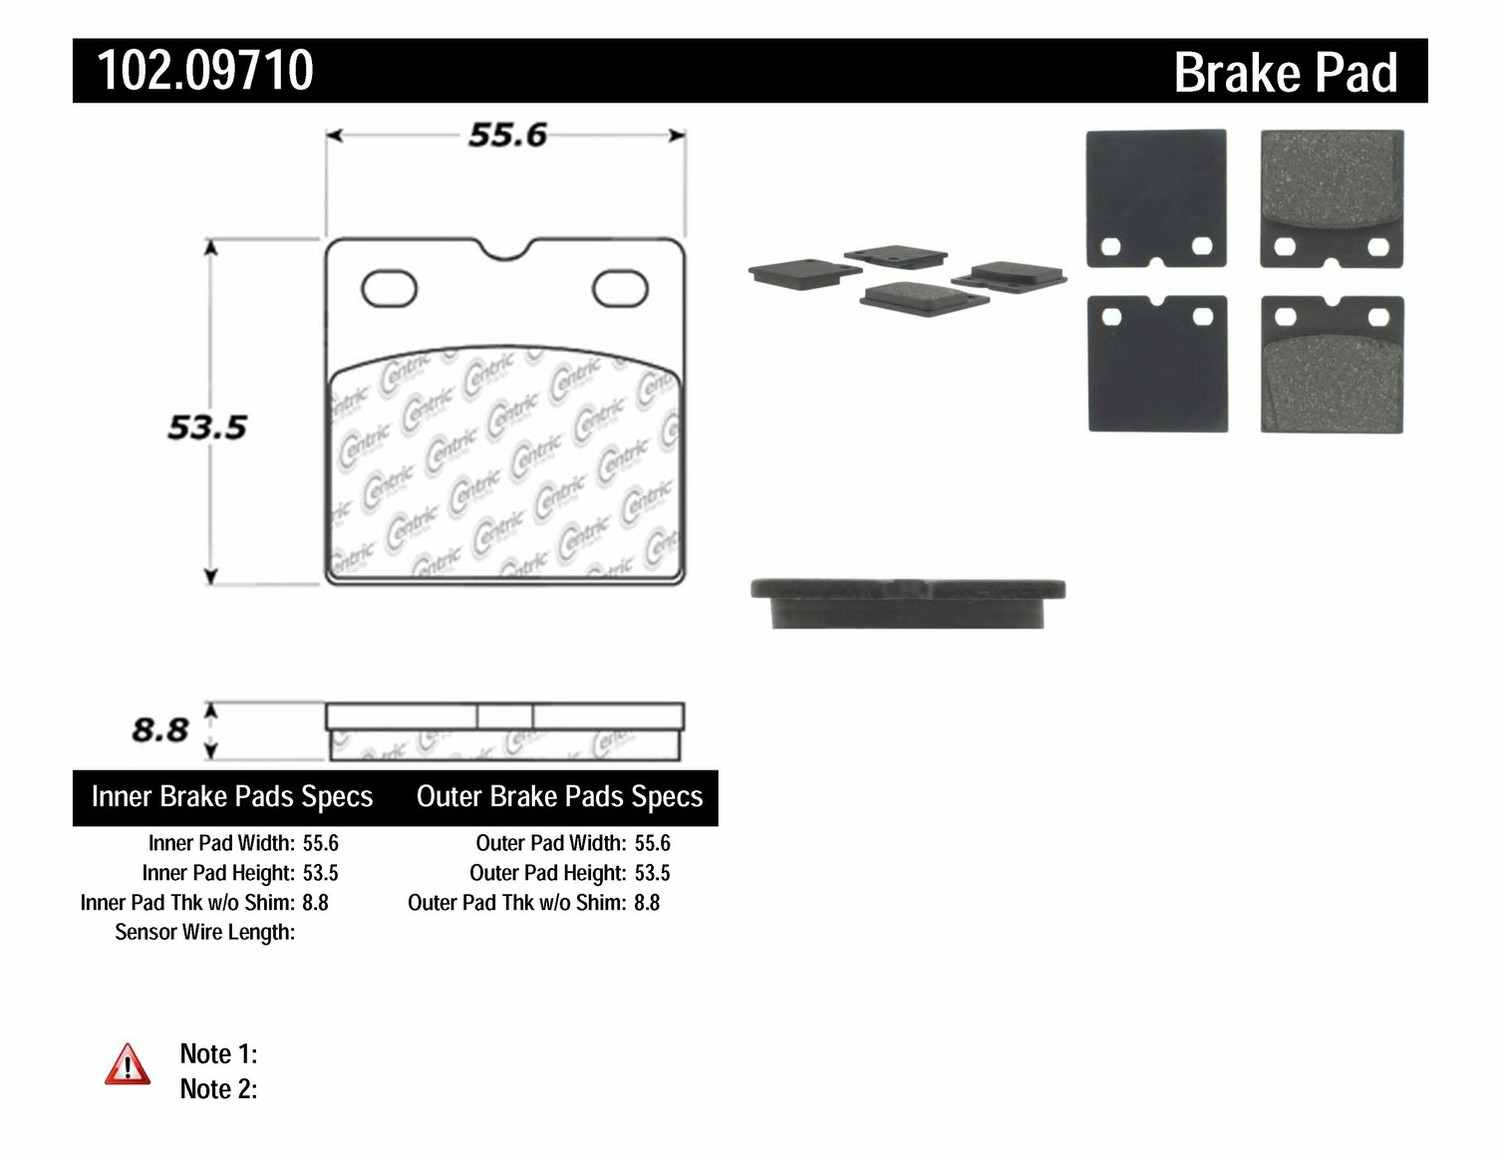 C-TEK BY CENTRIC - C-TEK Metallic Parking Brake Pad Set-Preferred - CTK 102.09710